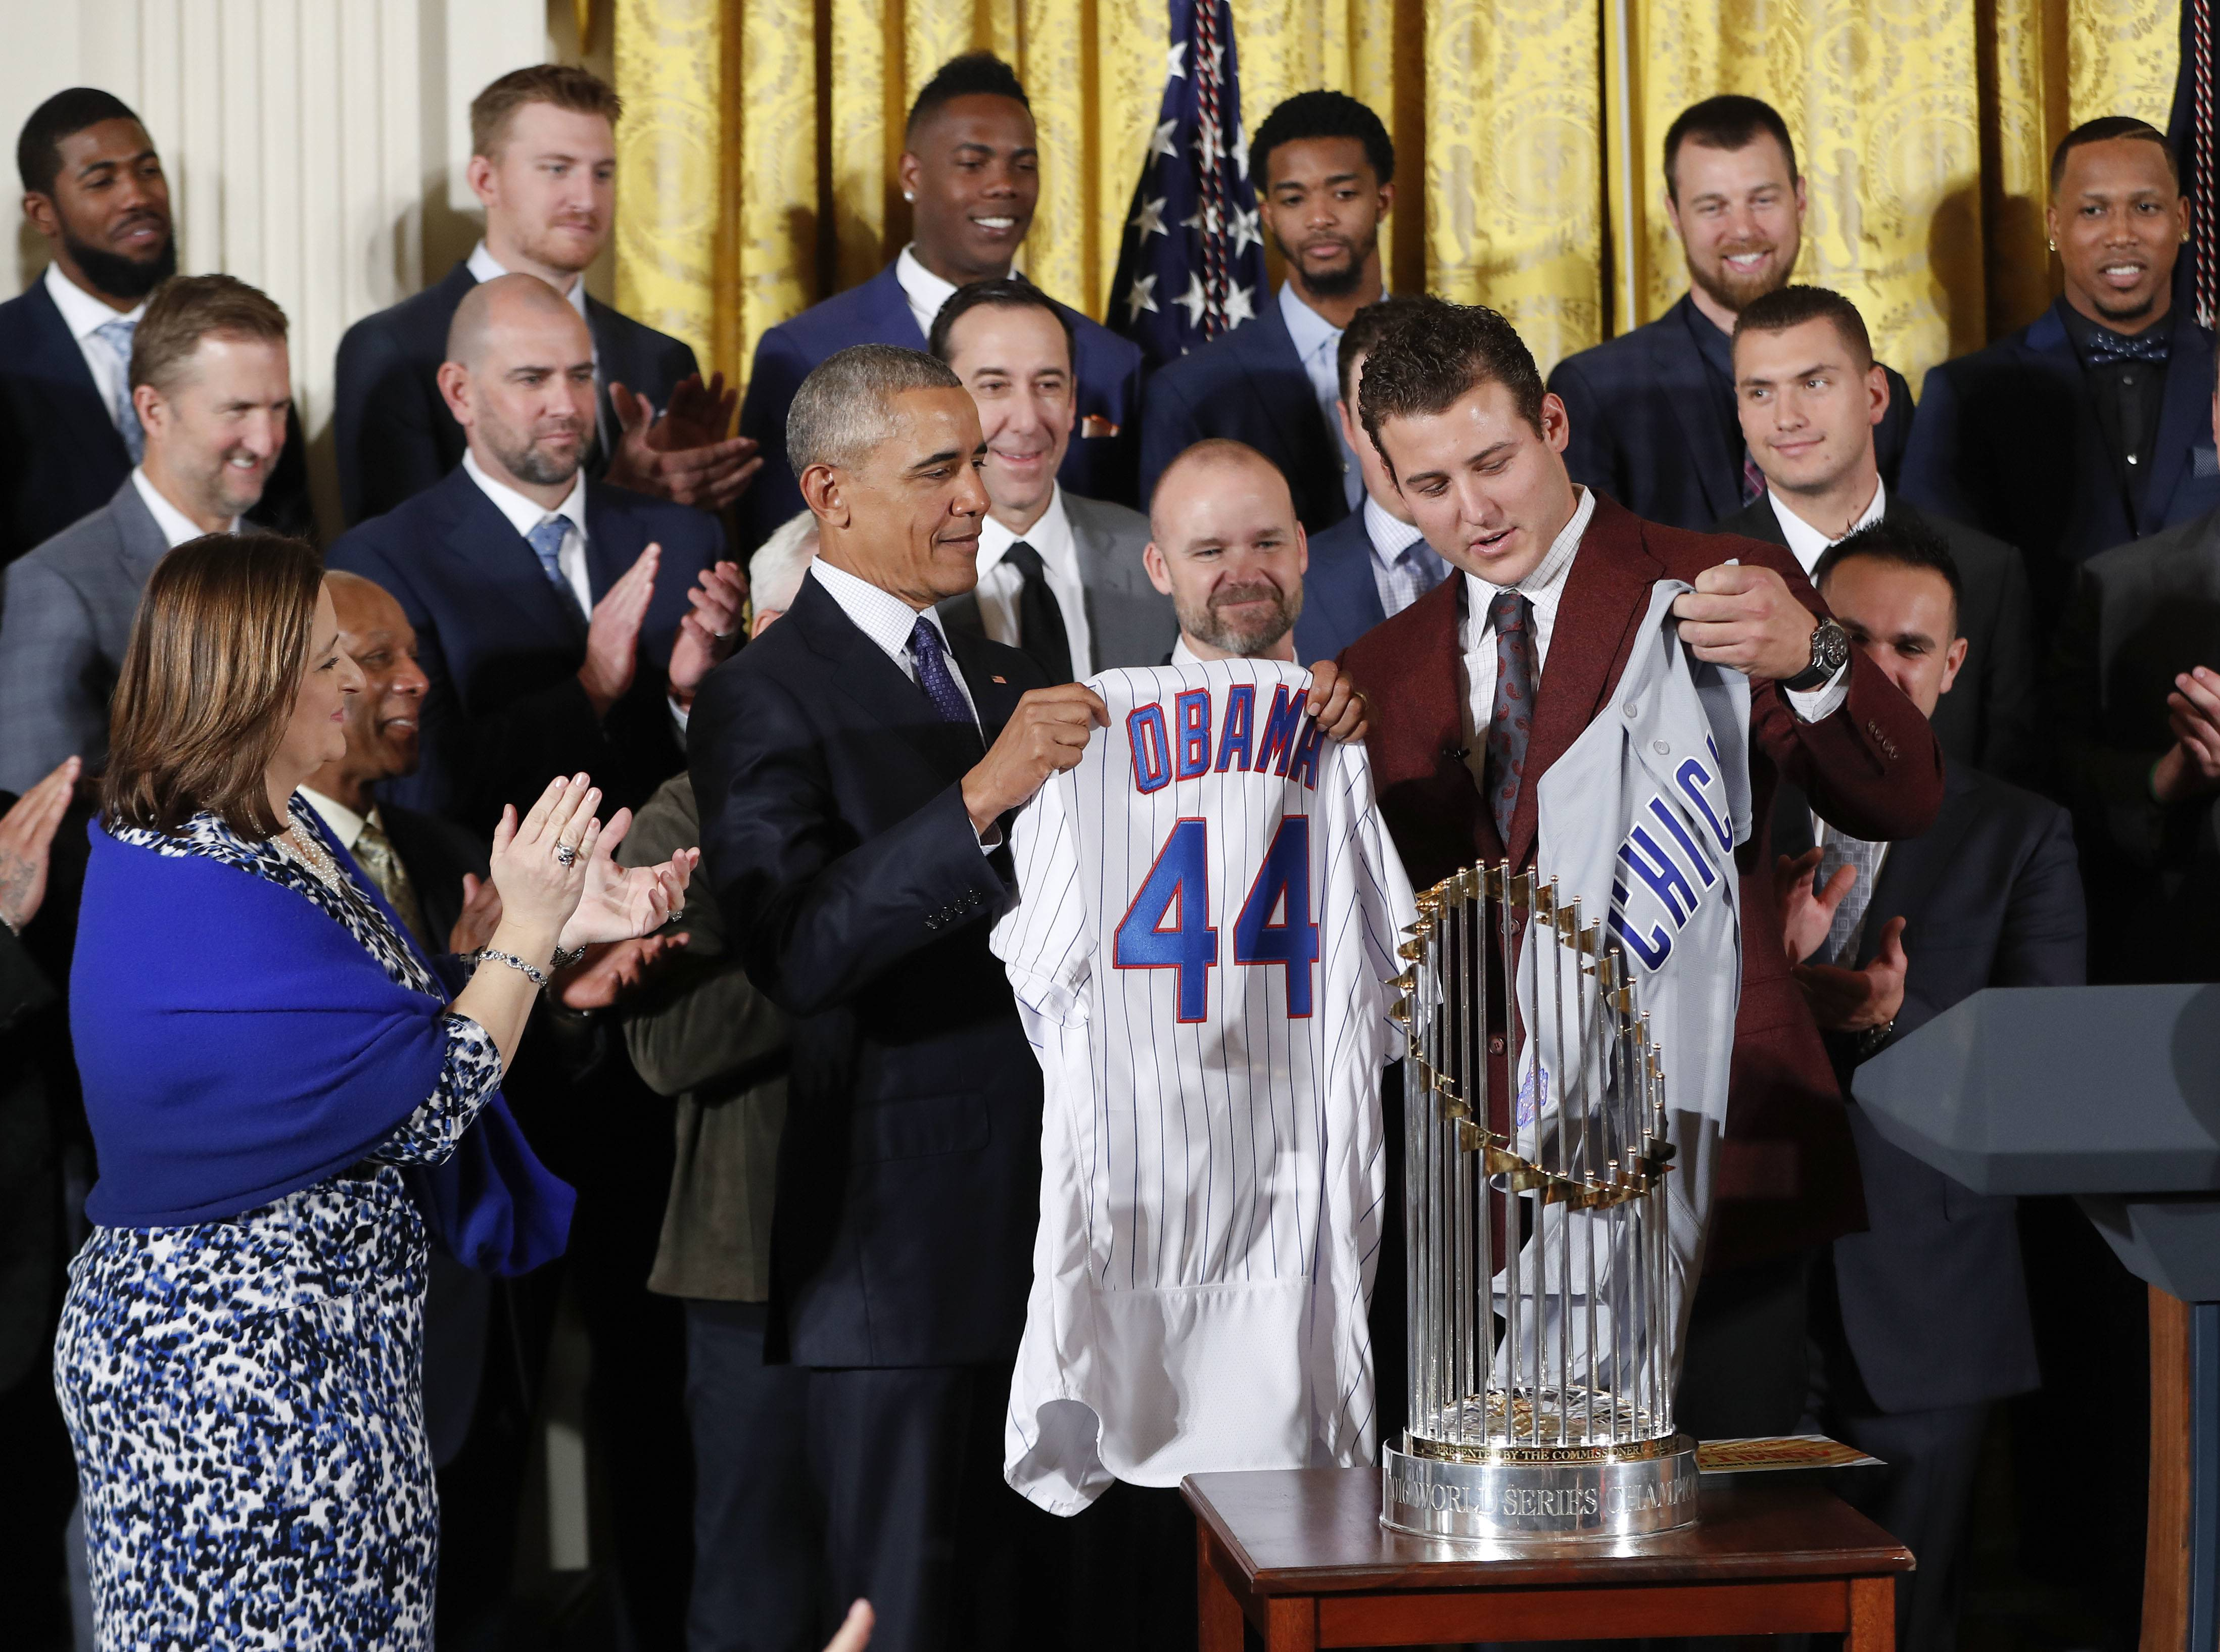 Images: World Series Champion Chicago Cubs visit White House